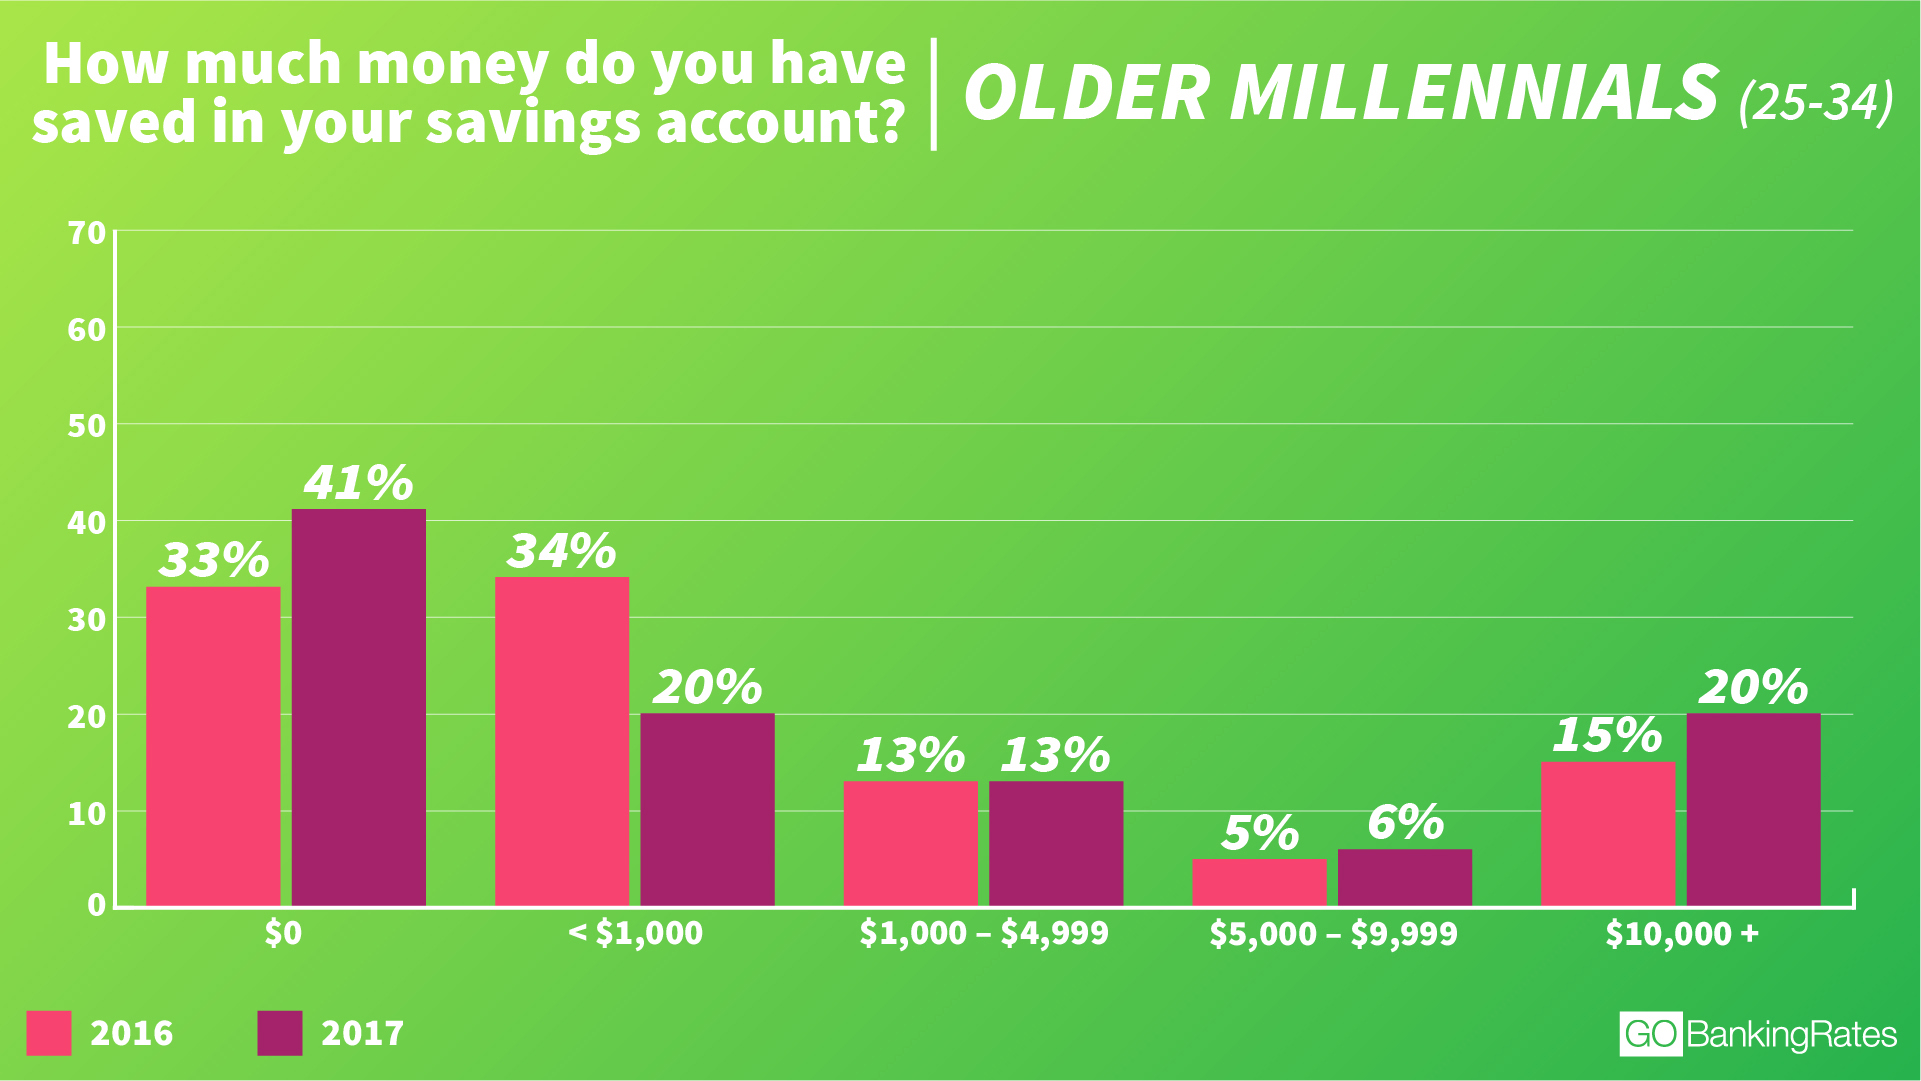 © GOBankingRates - Older Millennials